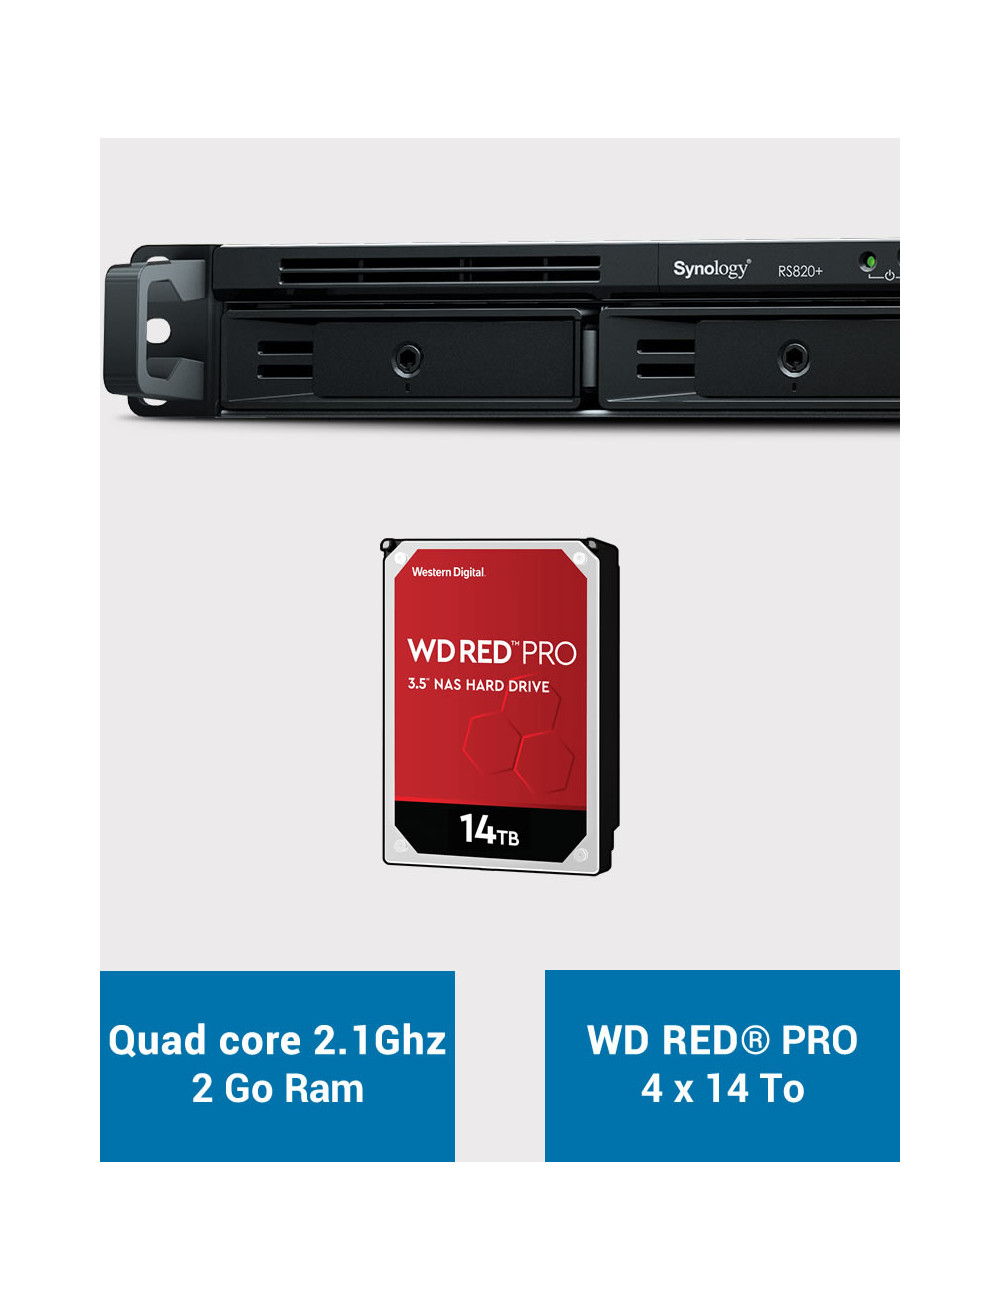 Synology RS820+ 2GB Serveur NAS WD RED PRO 56To (4x14To)